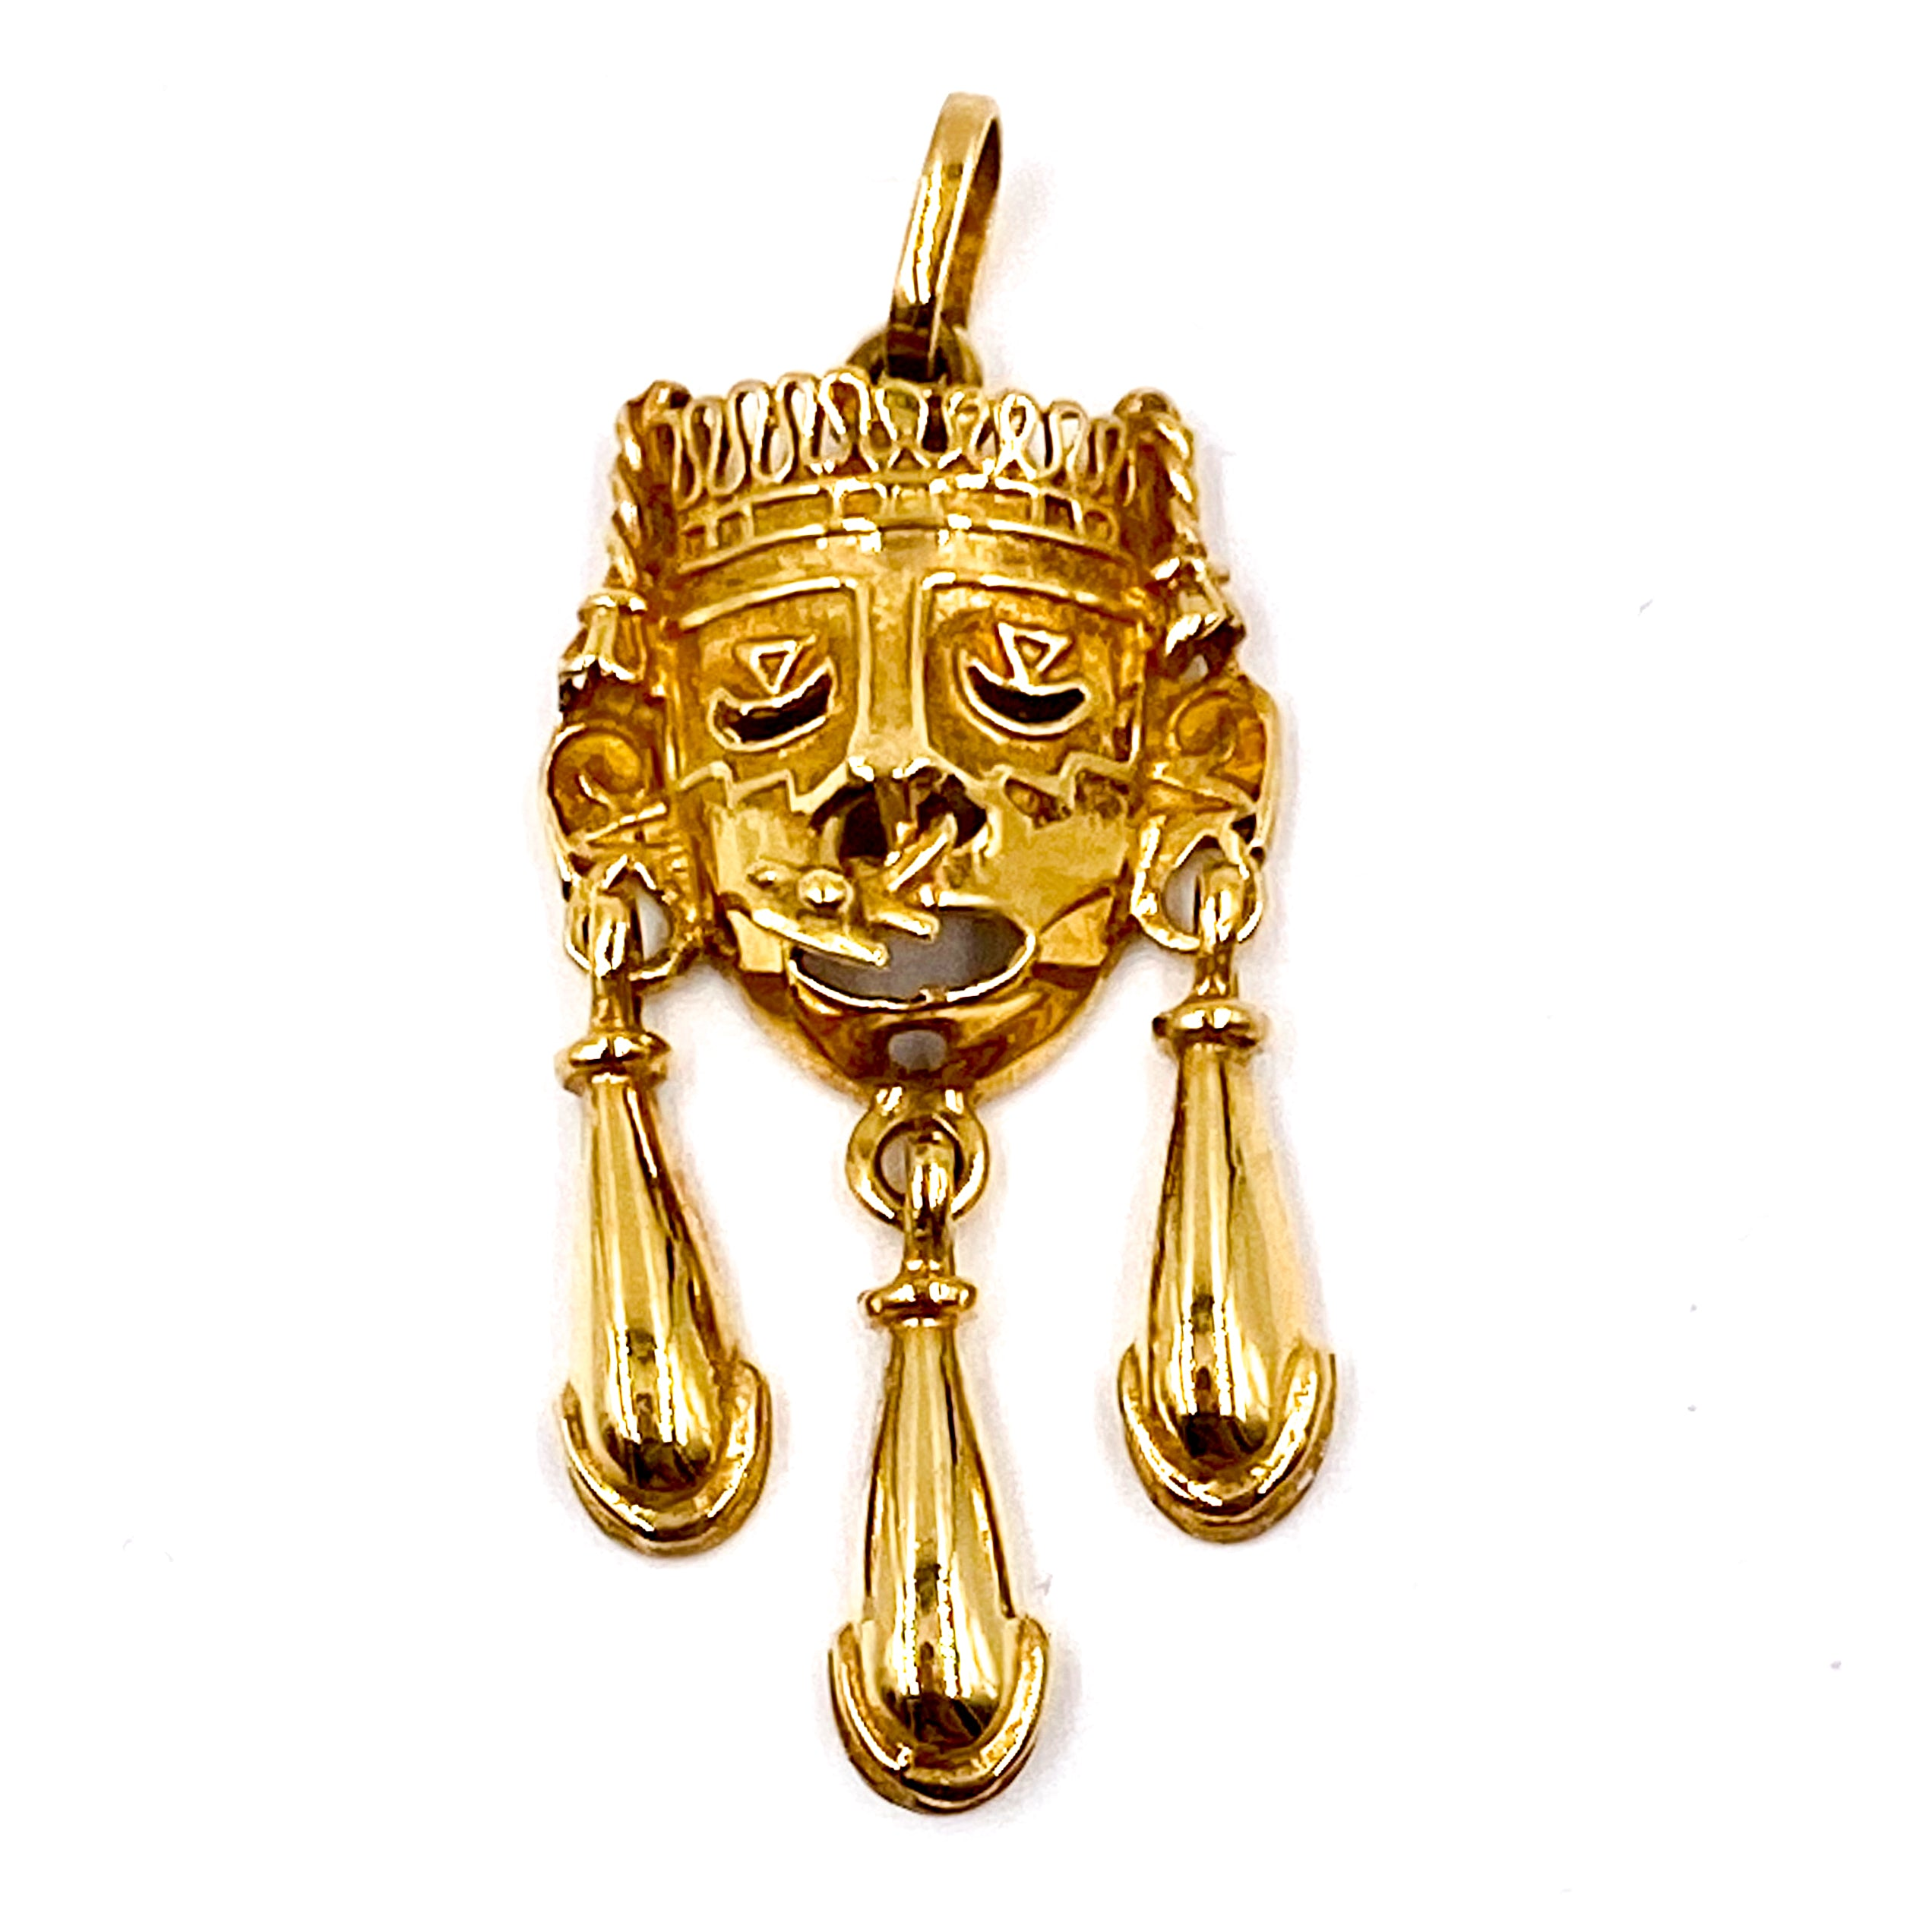 Vintage Incan Mayan Aztec Mask Warrior With Nose Ring Pendant 14KT Gold